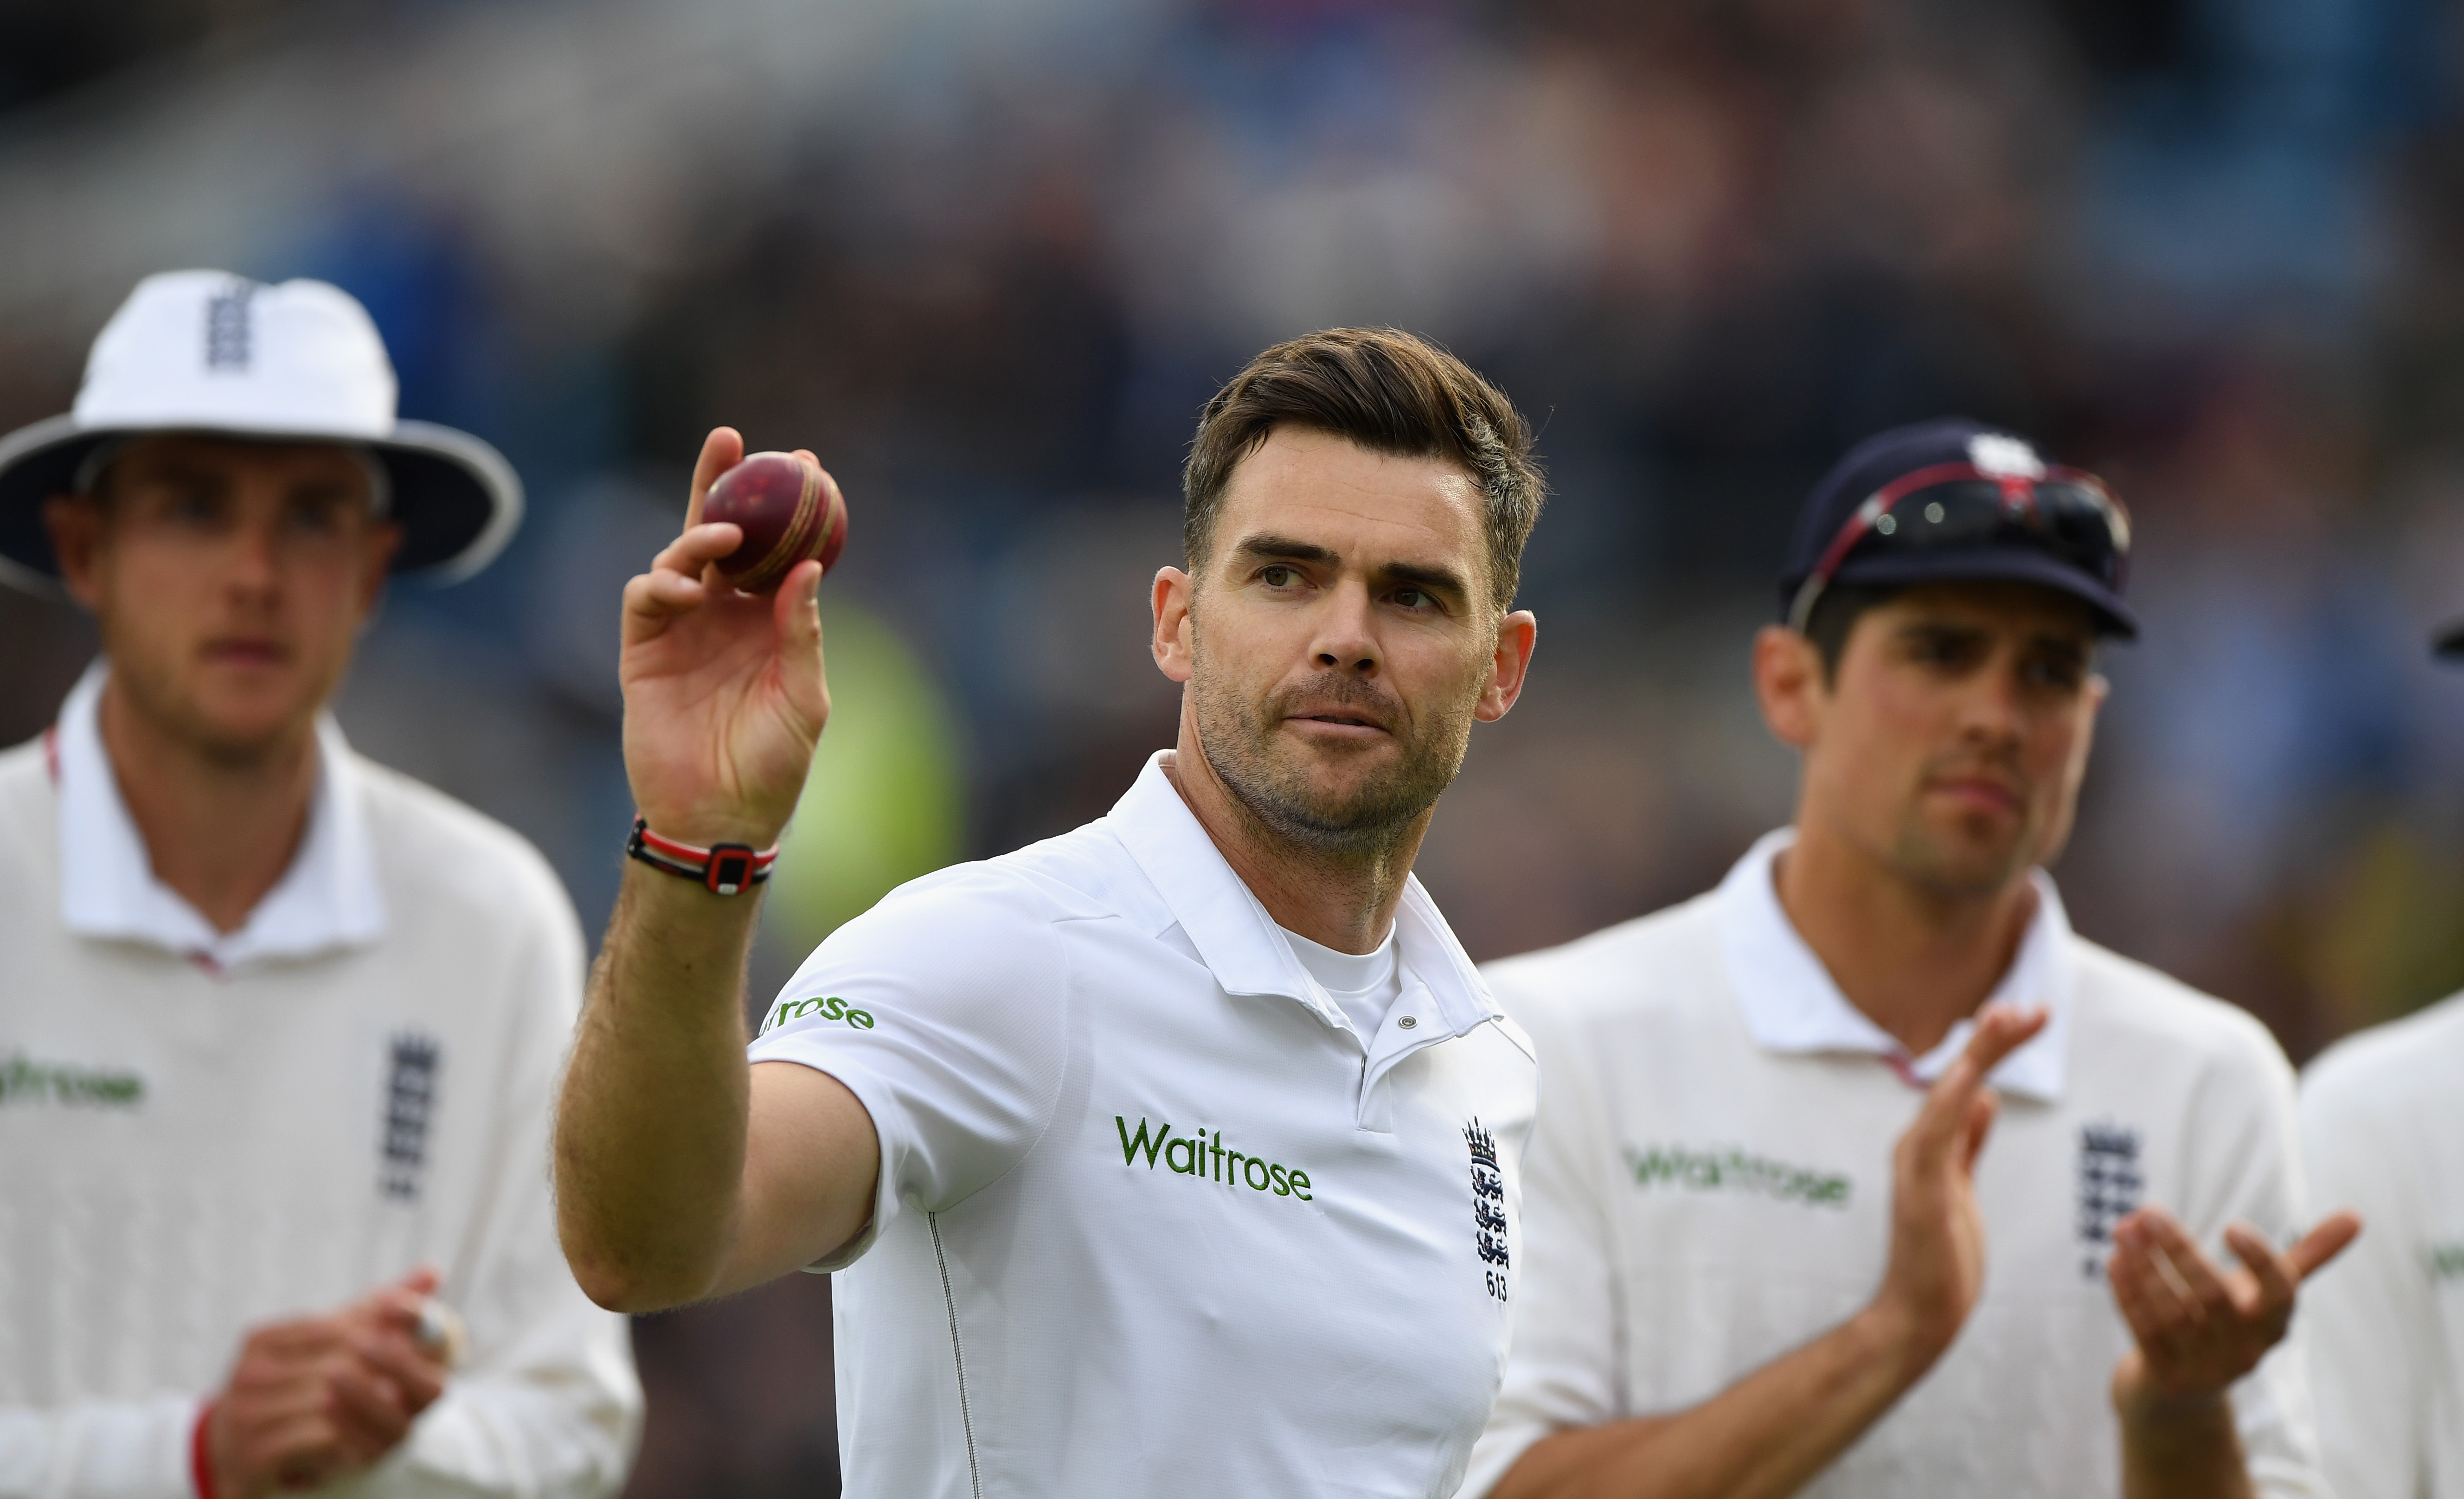 Jimmy Anderson replaces Stuart Broad as world's No.1 Test bowler